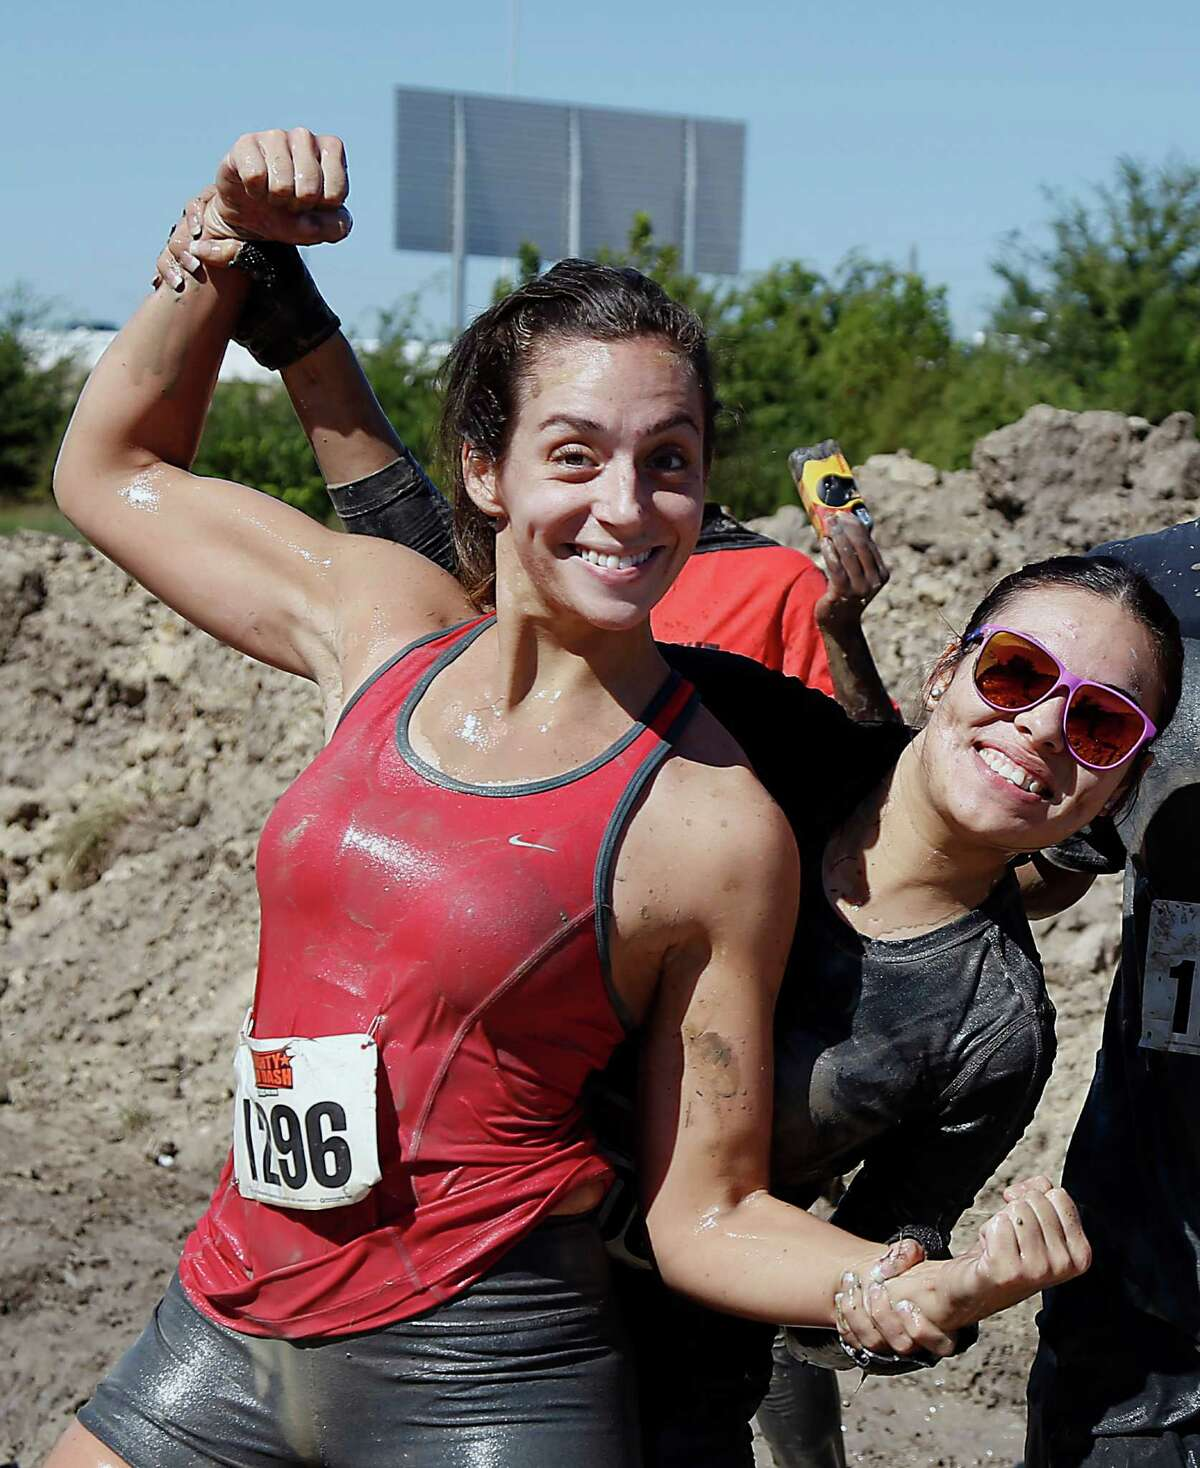 Dashers pose for a photograph during the MIGHTY MUD DASH 5k challenge Sunday, Oct. 5, 2014, in Houston. The dash has 20+ Military style obstacles.